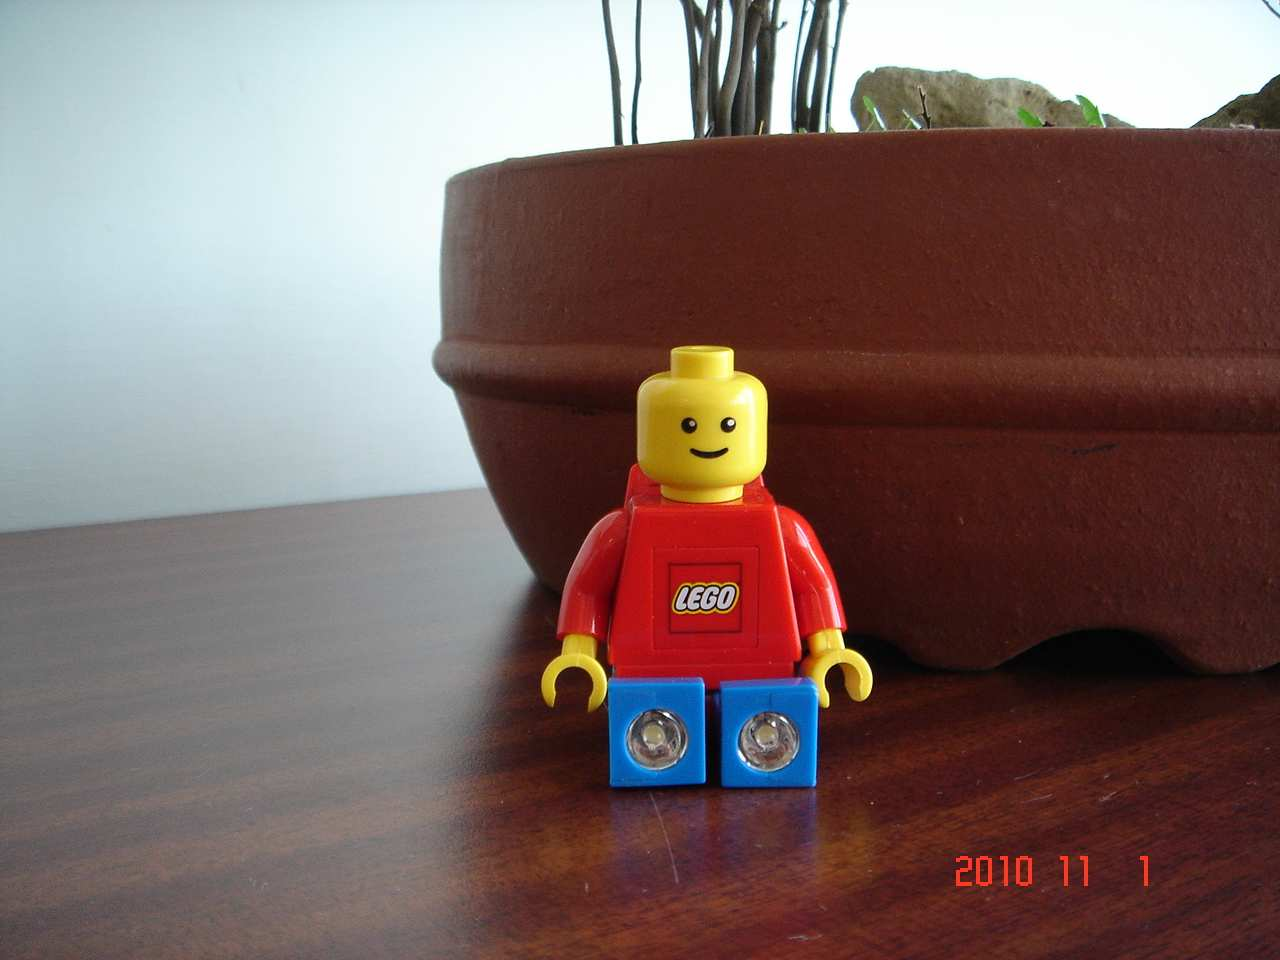 lego_light-3.jpg